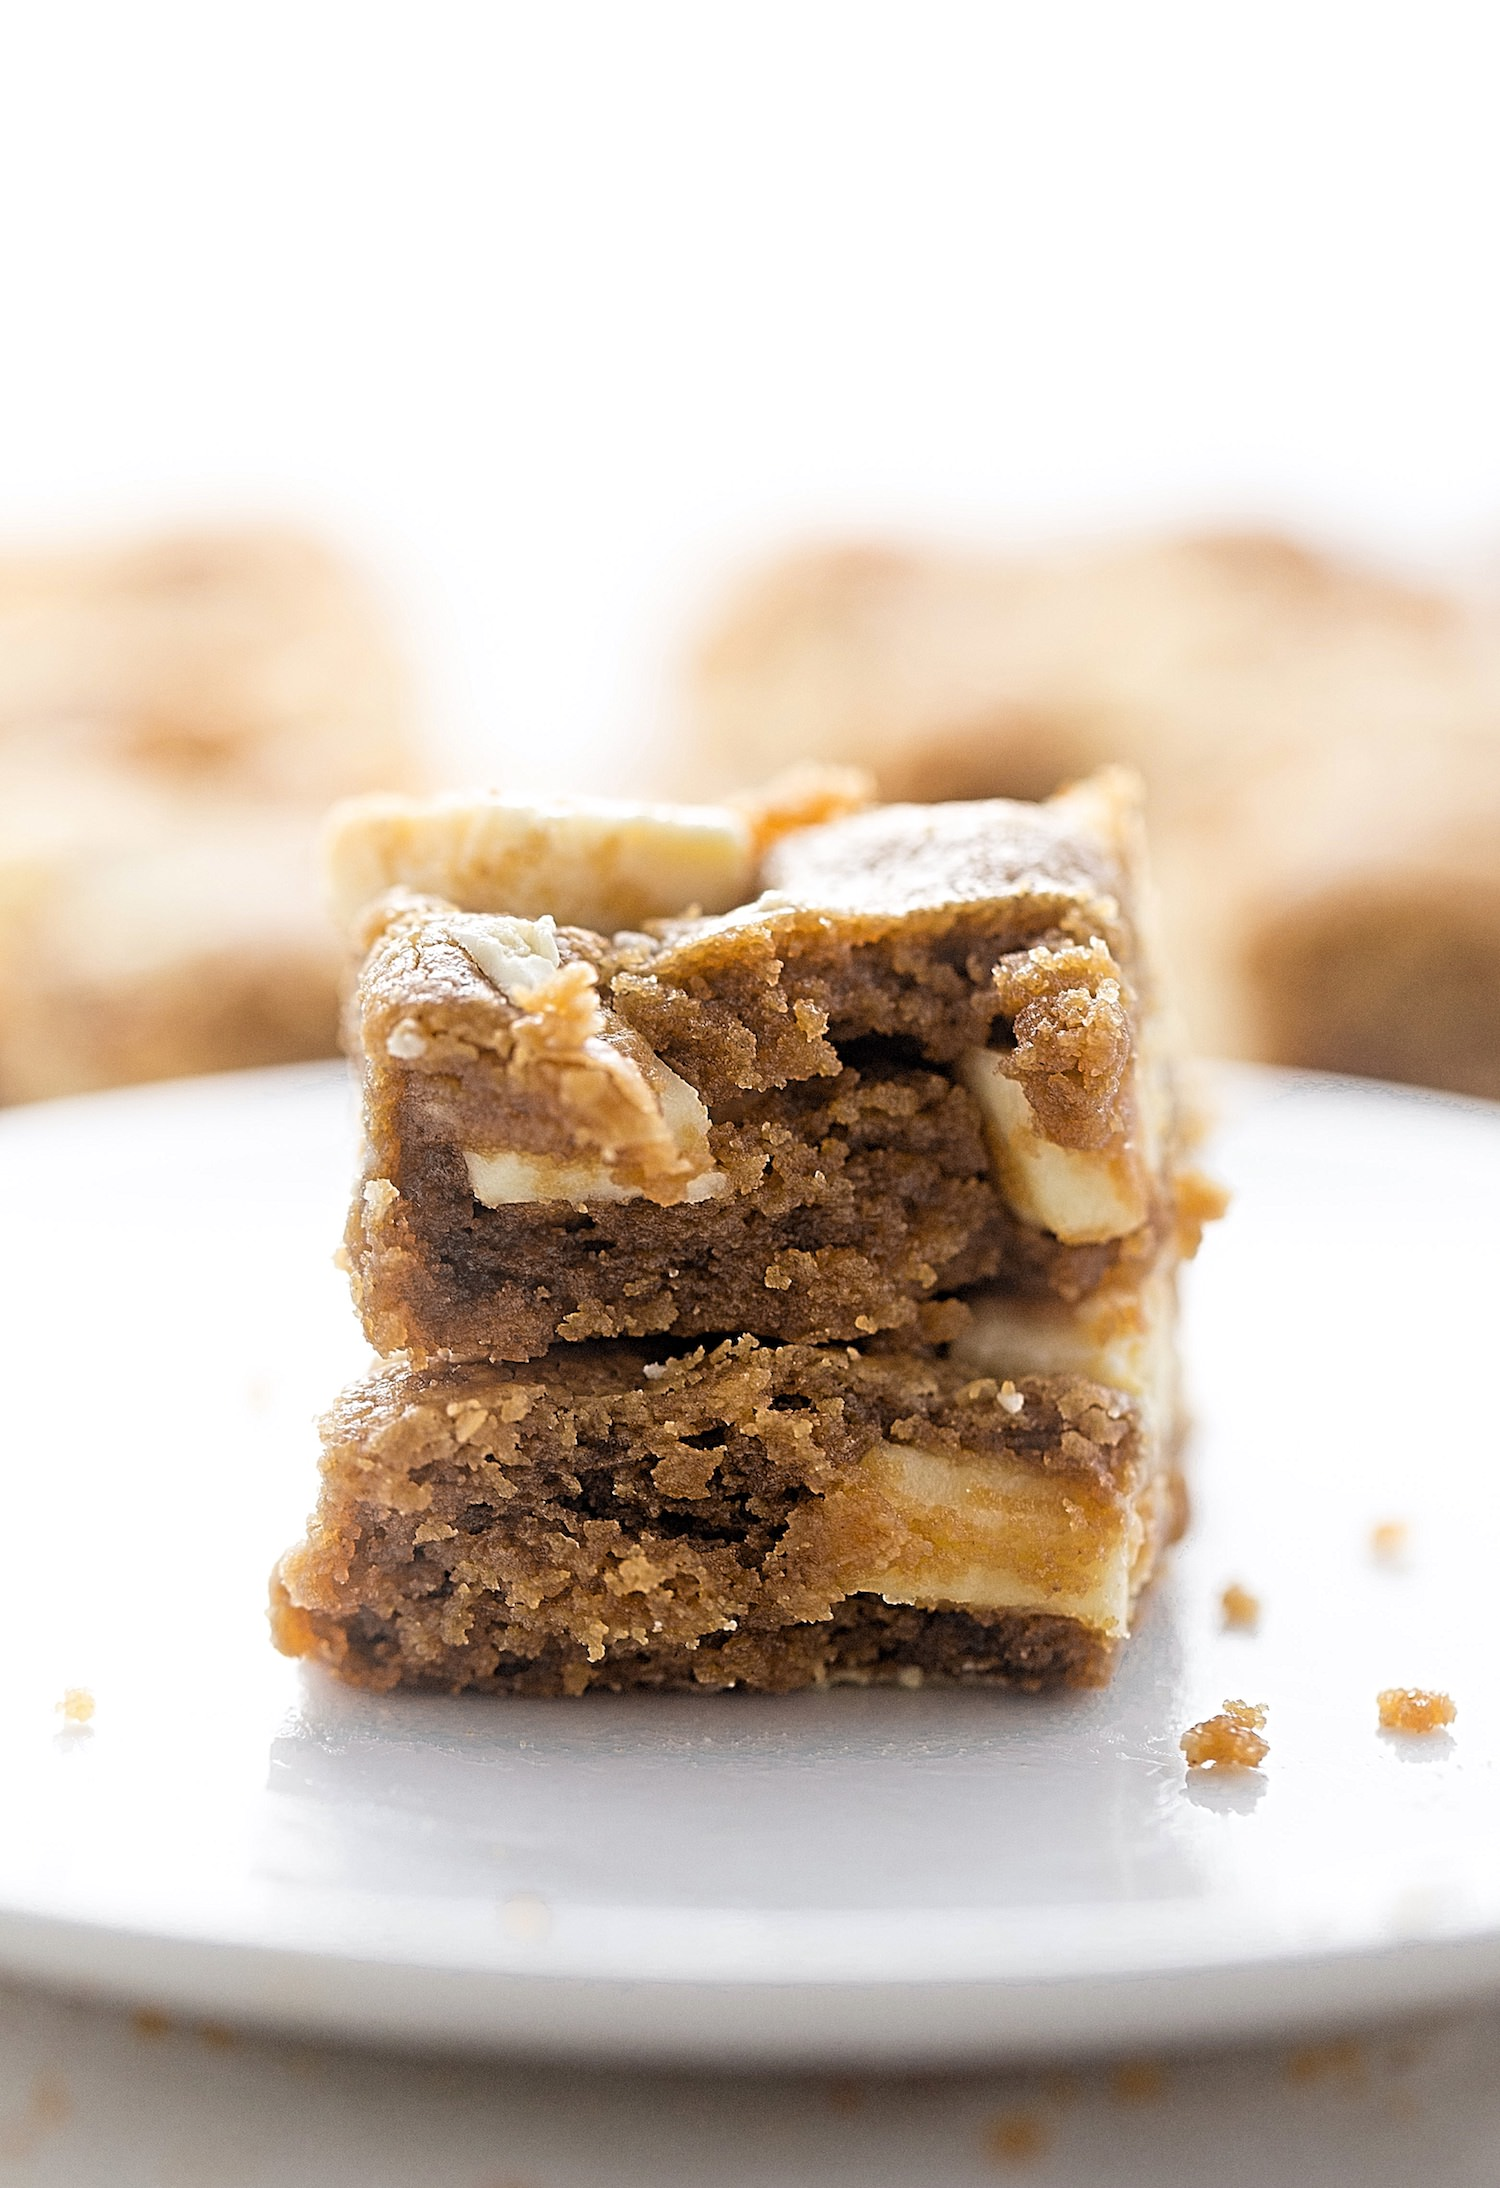 Flourless Peanut Butter White Chocolate Bars: soft, rich, gooey peanut butter bars packed with white chocolate chunks. Gluten-free and so easy! | TrufflesandTrends.com